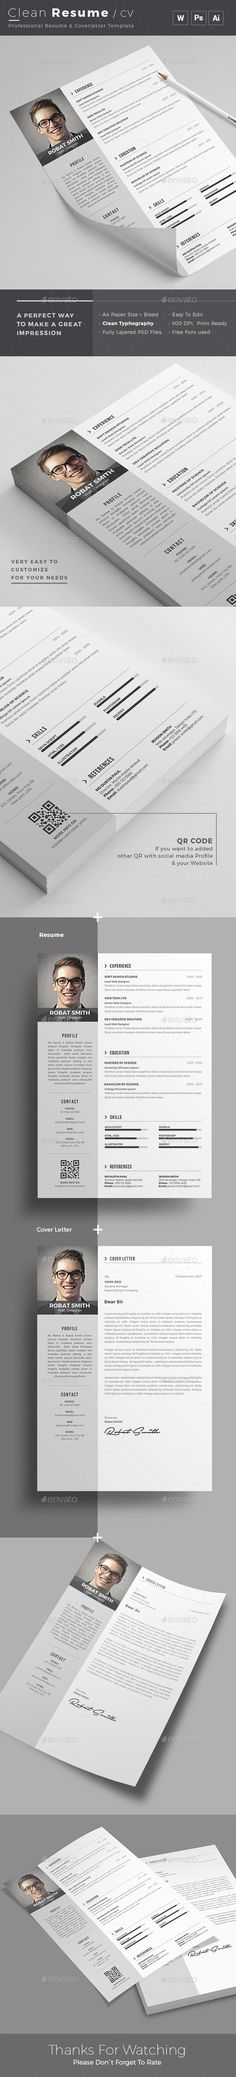 BW Resume  Resumes Stationery  Resume Templates  Cv